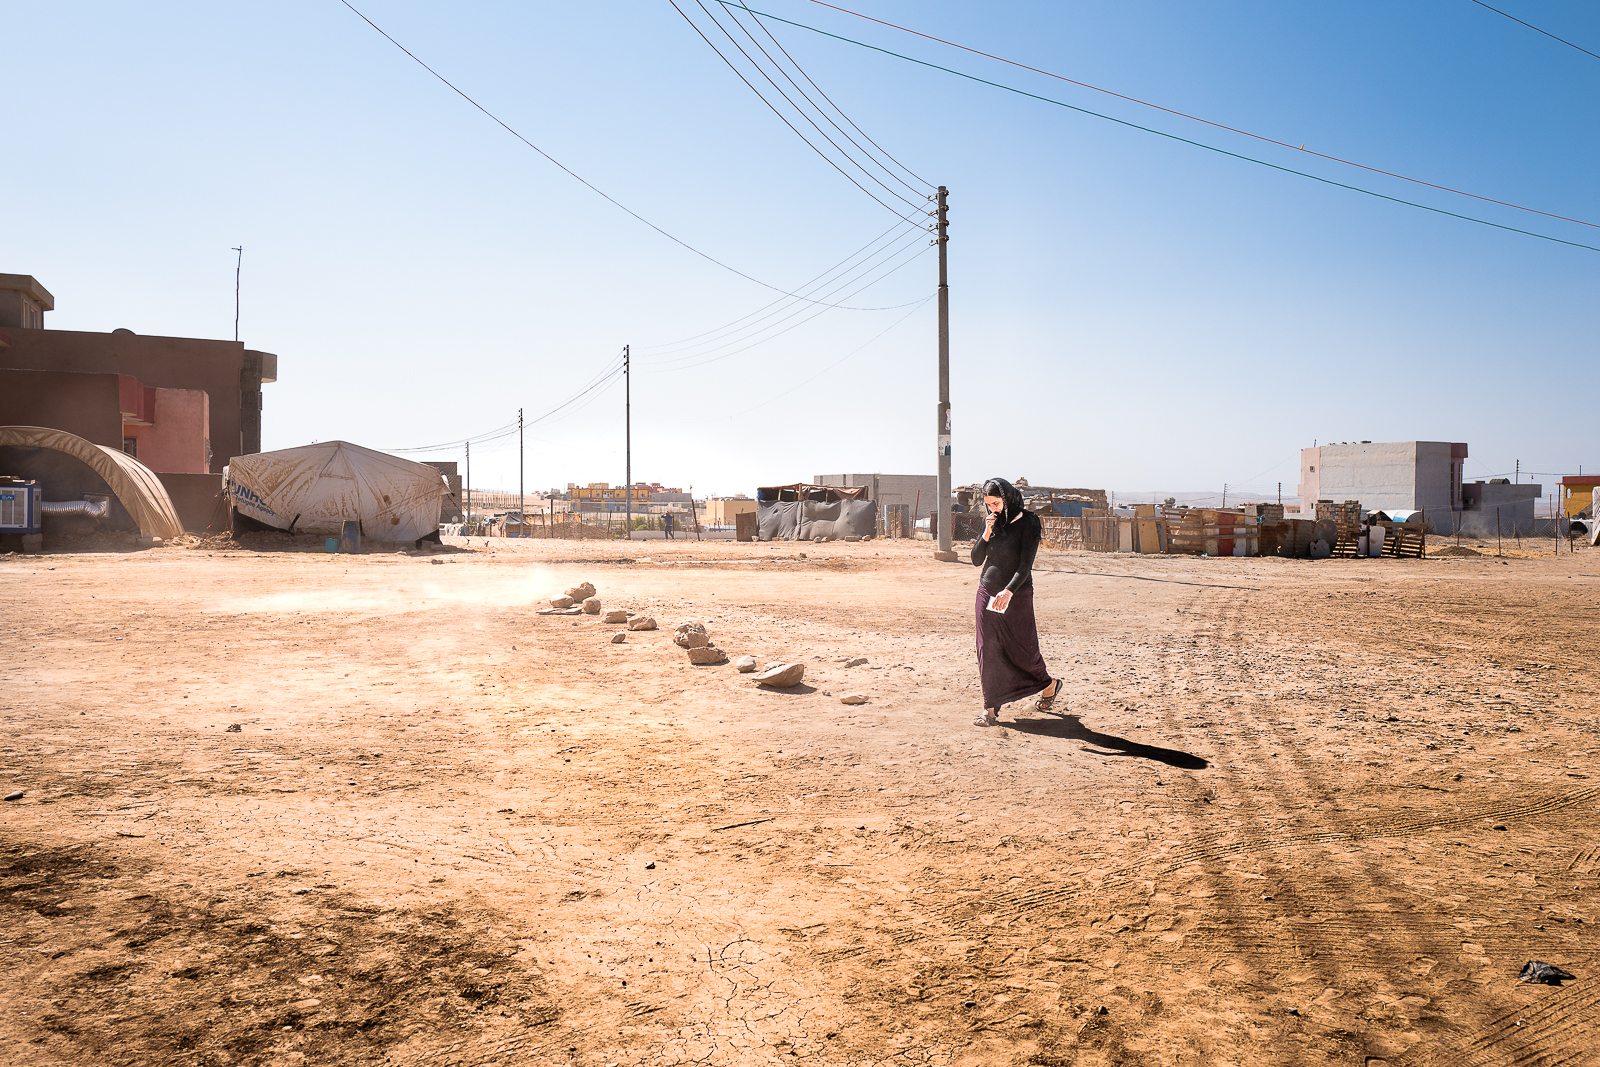 A mother is walking through a sand storm in a unofficial camp in Sharya, near Dohuk